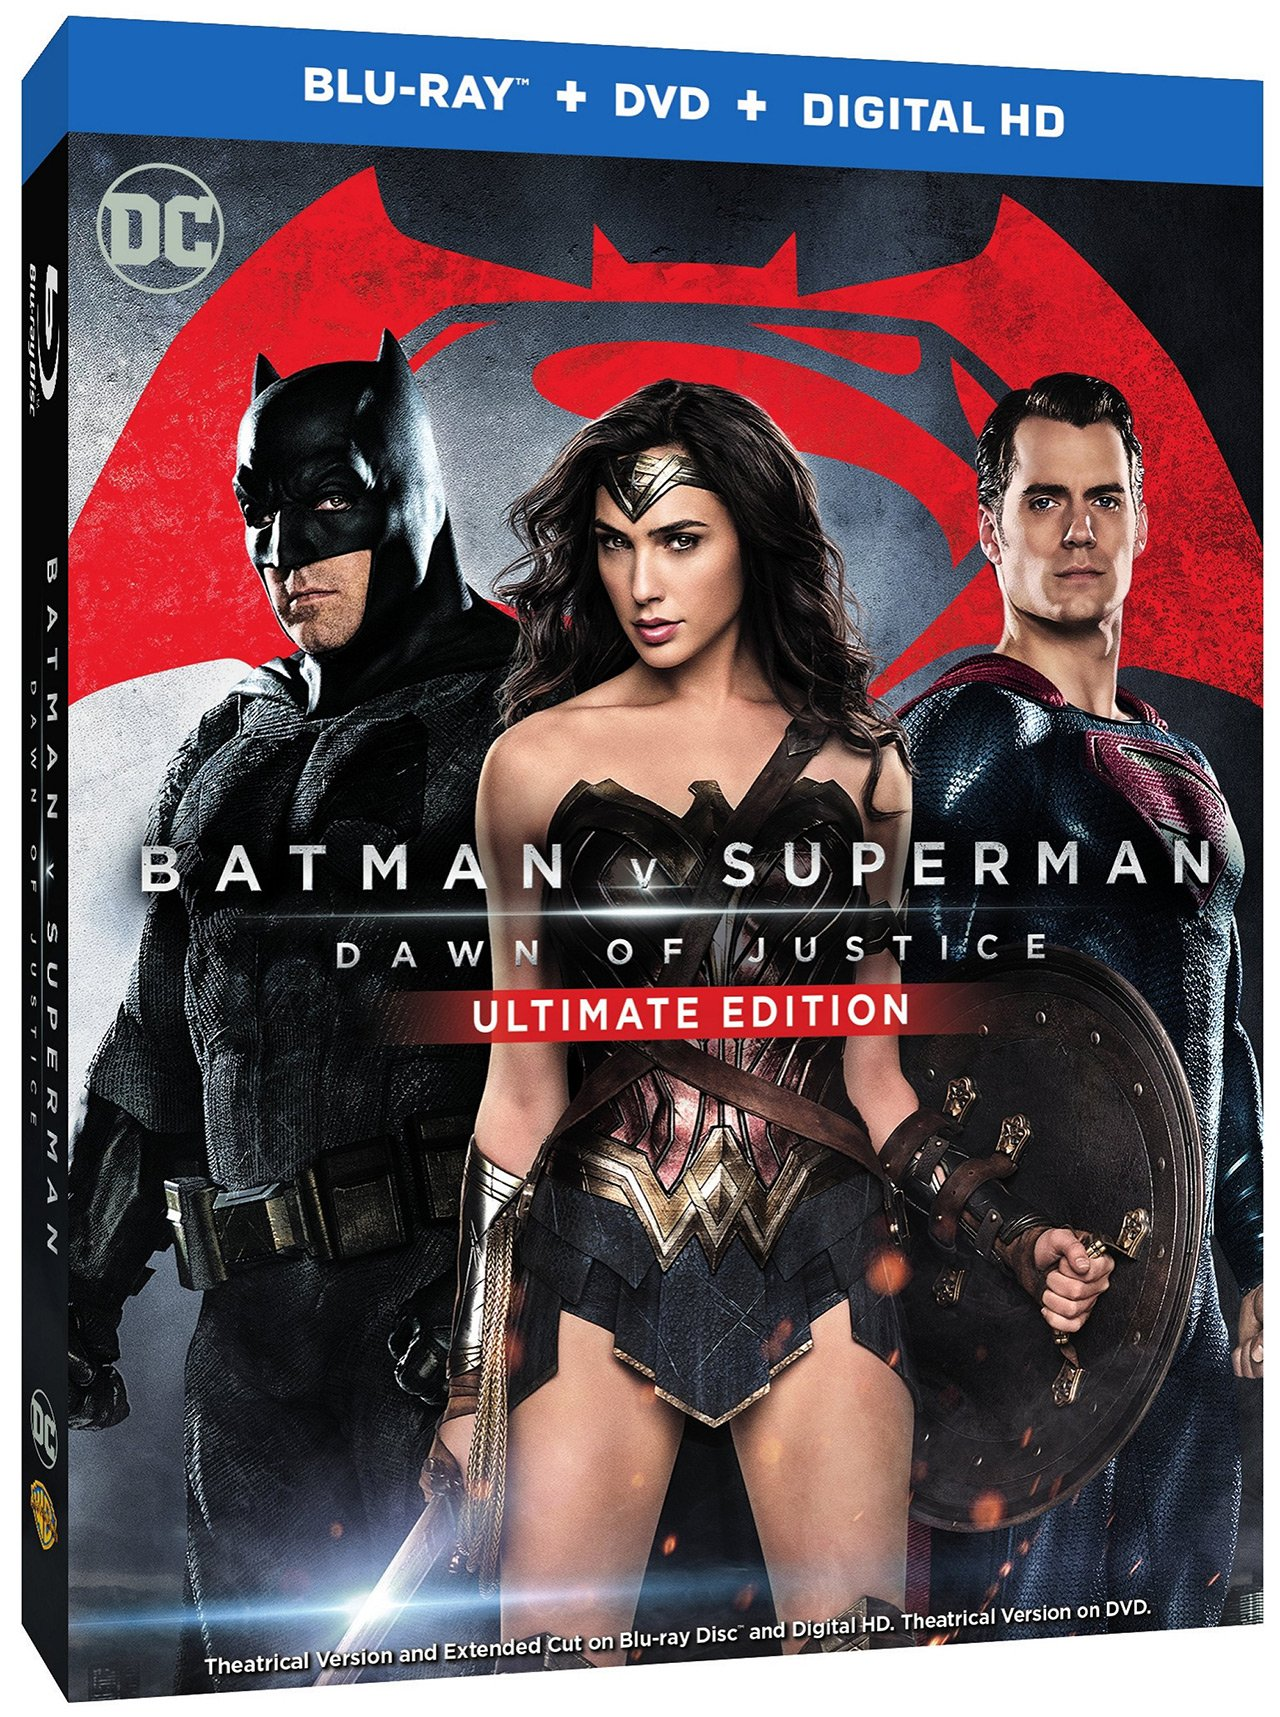 Batman v Superman Blu-ray Dolby Atmos